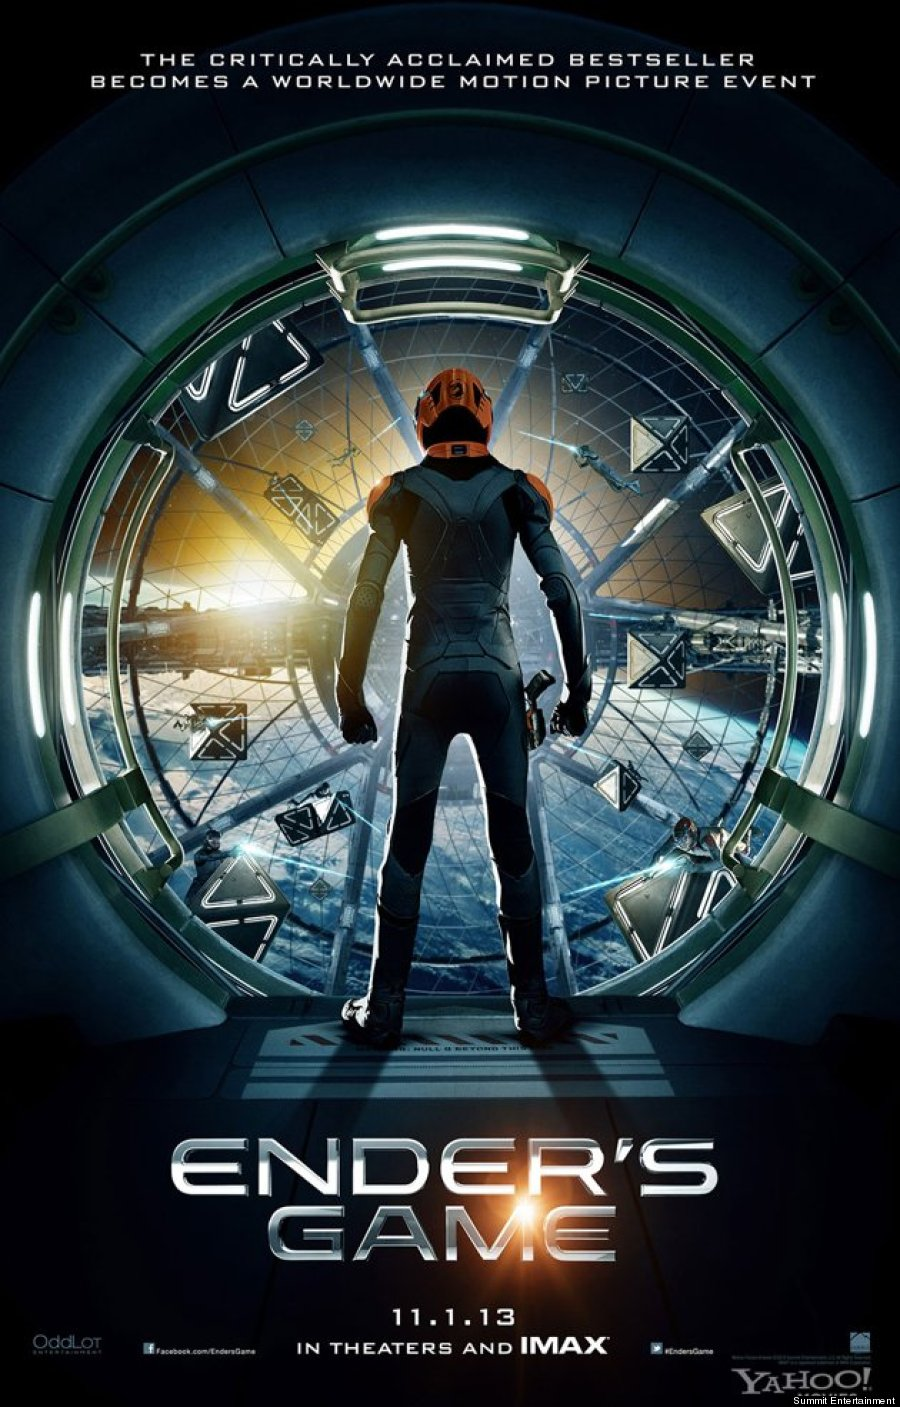 The picture of the film - Enders Game